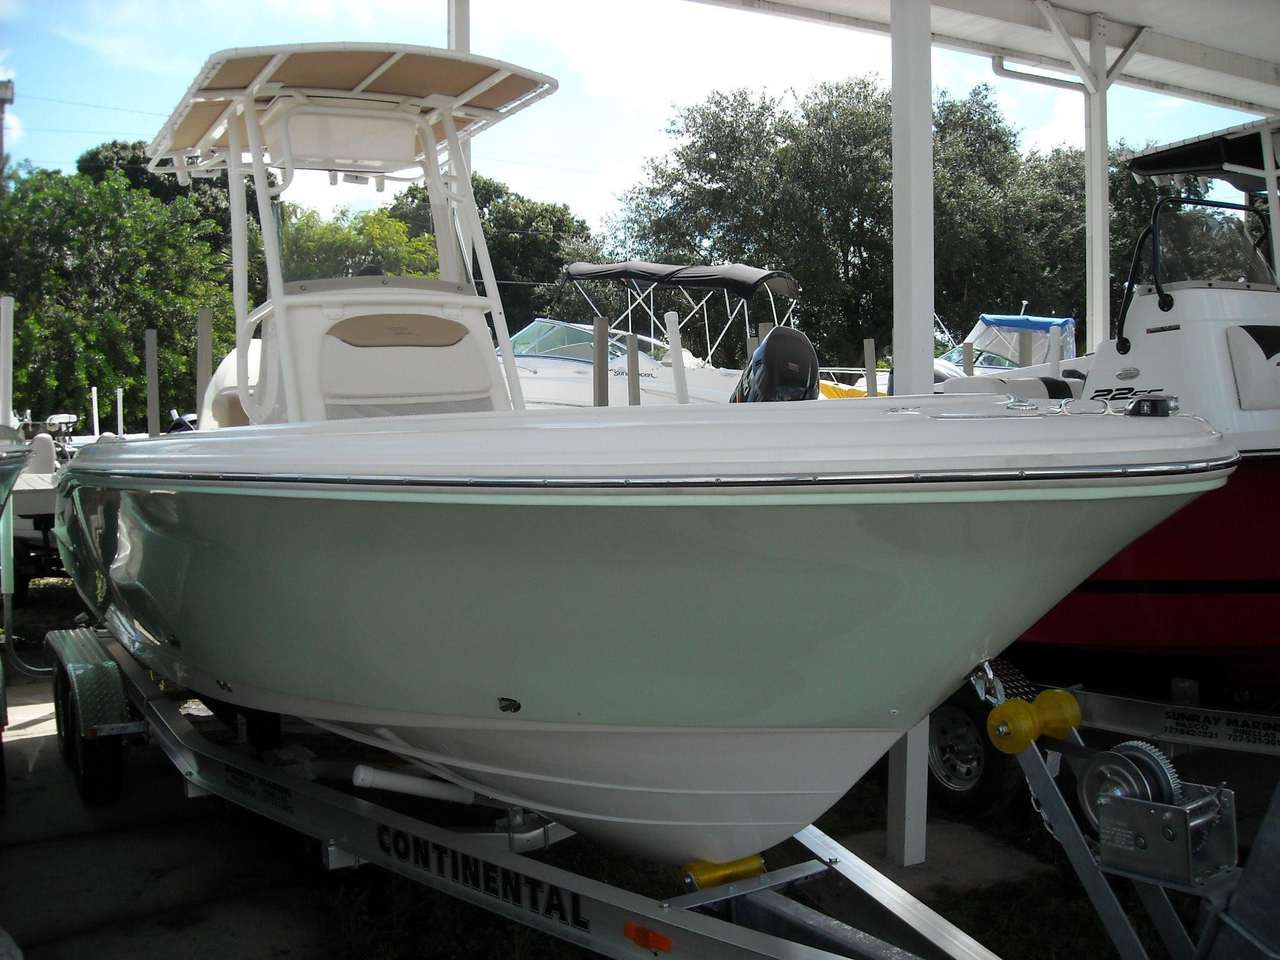 2017 new pioneer 220 bay sport center console fishing boat for Center console sport fishing boats